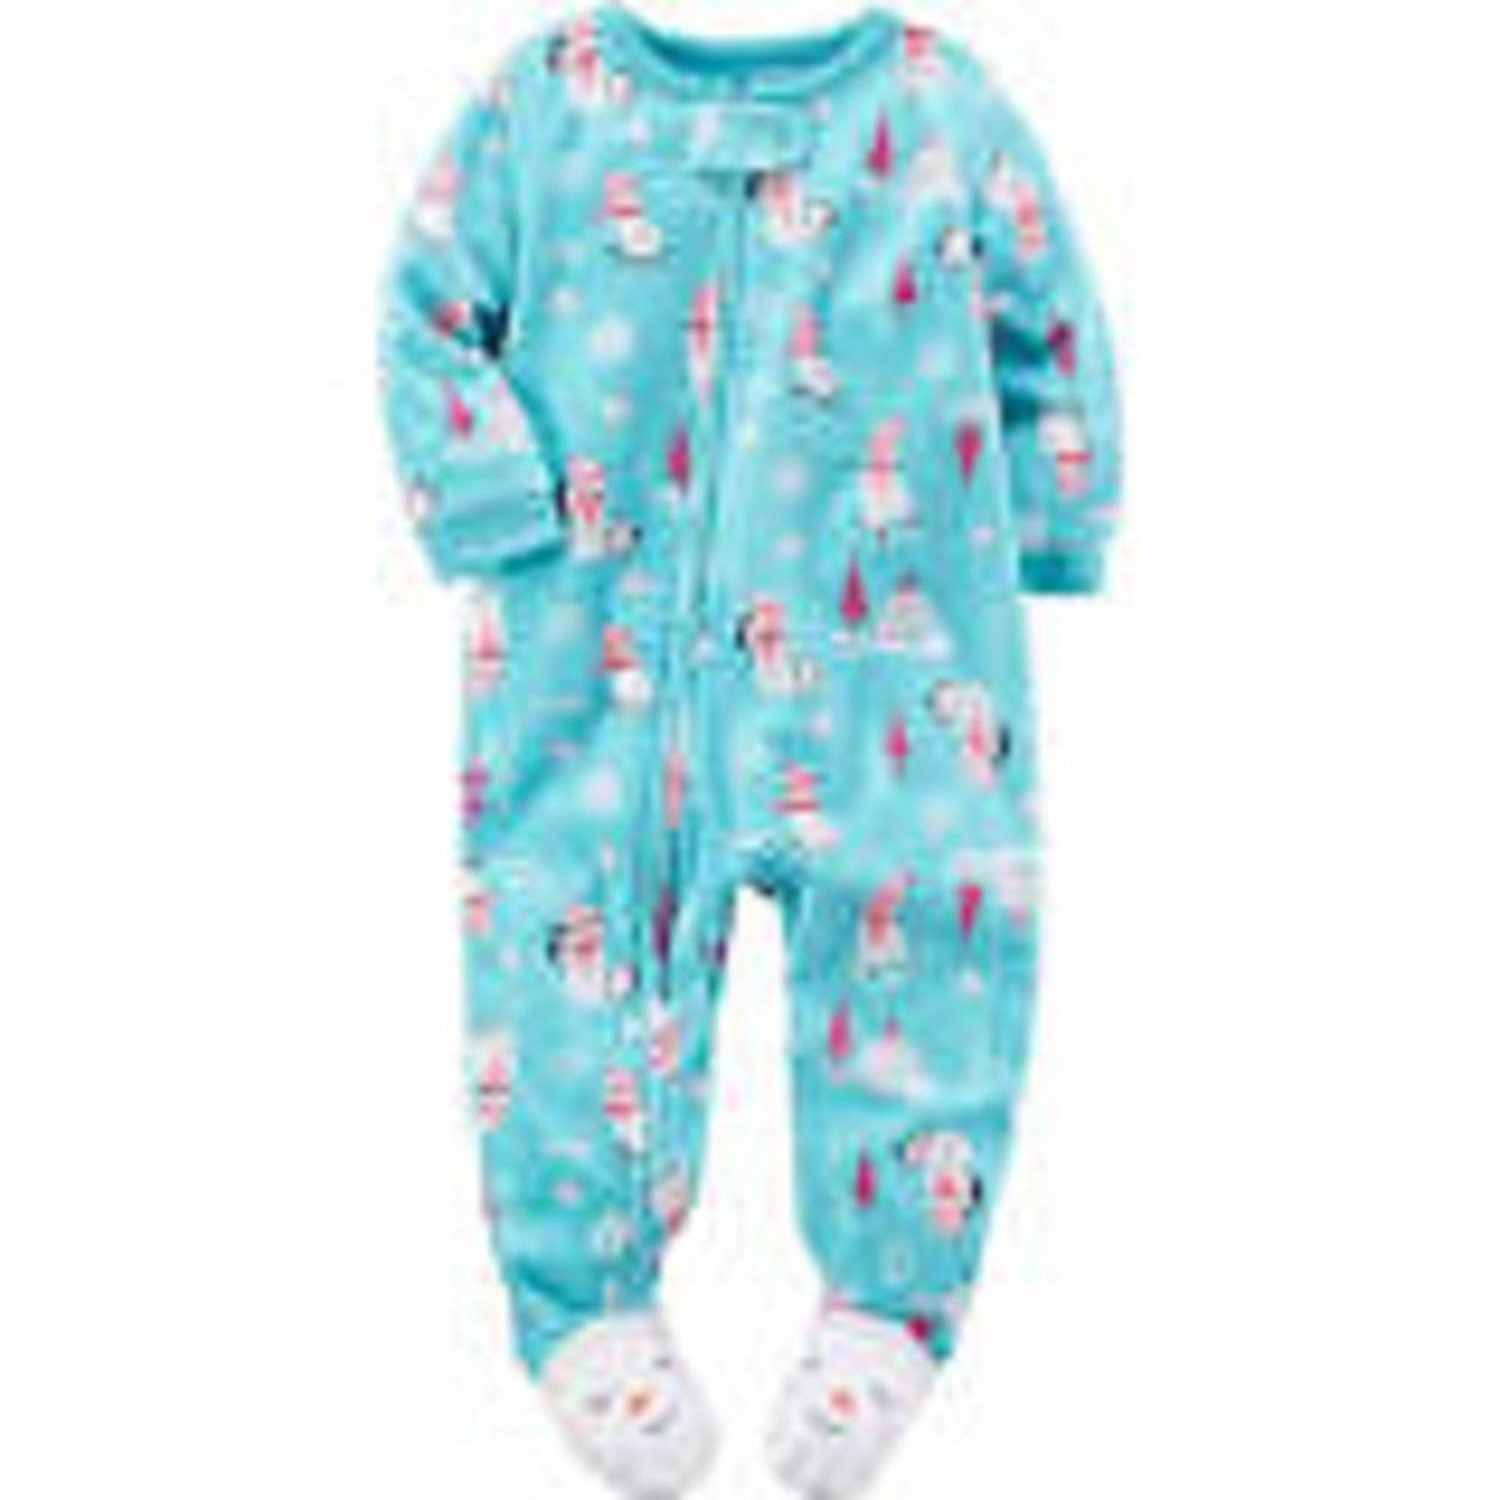 68f4b75f0 Carter's Girls Size 6 Months Snowman & Penguin Fleece Footed Sleeper, Blue